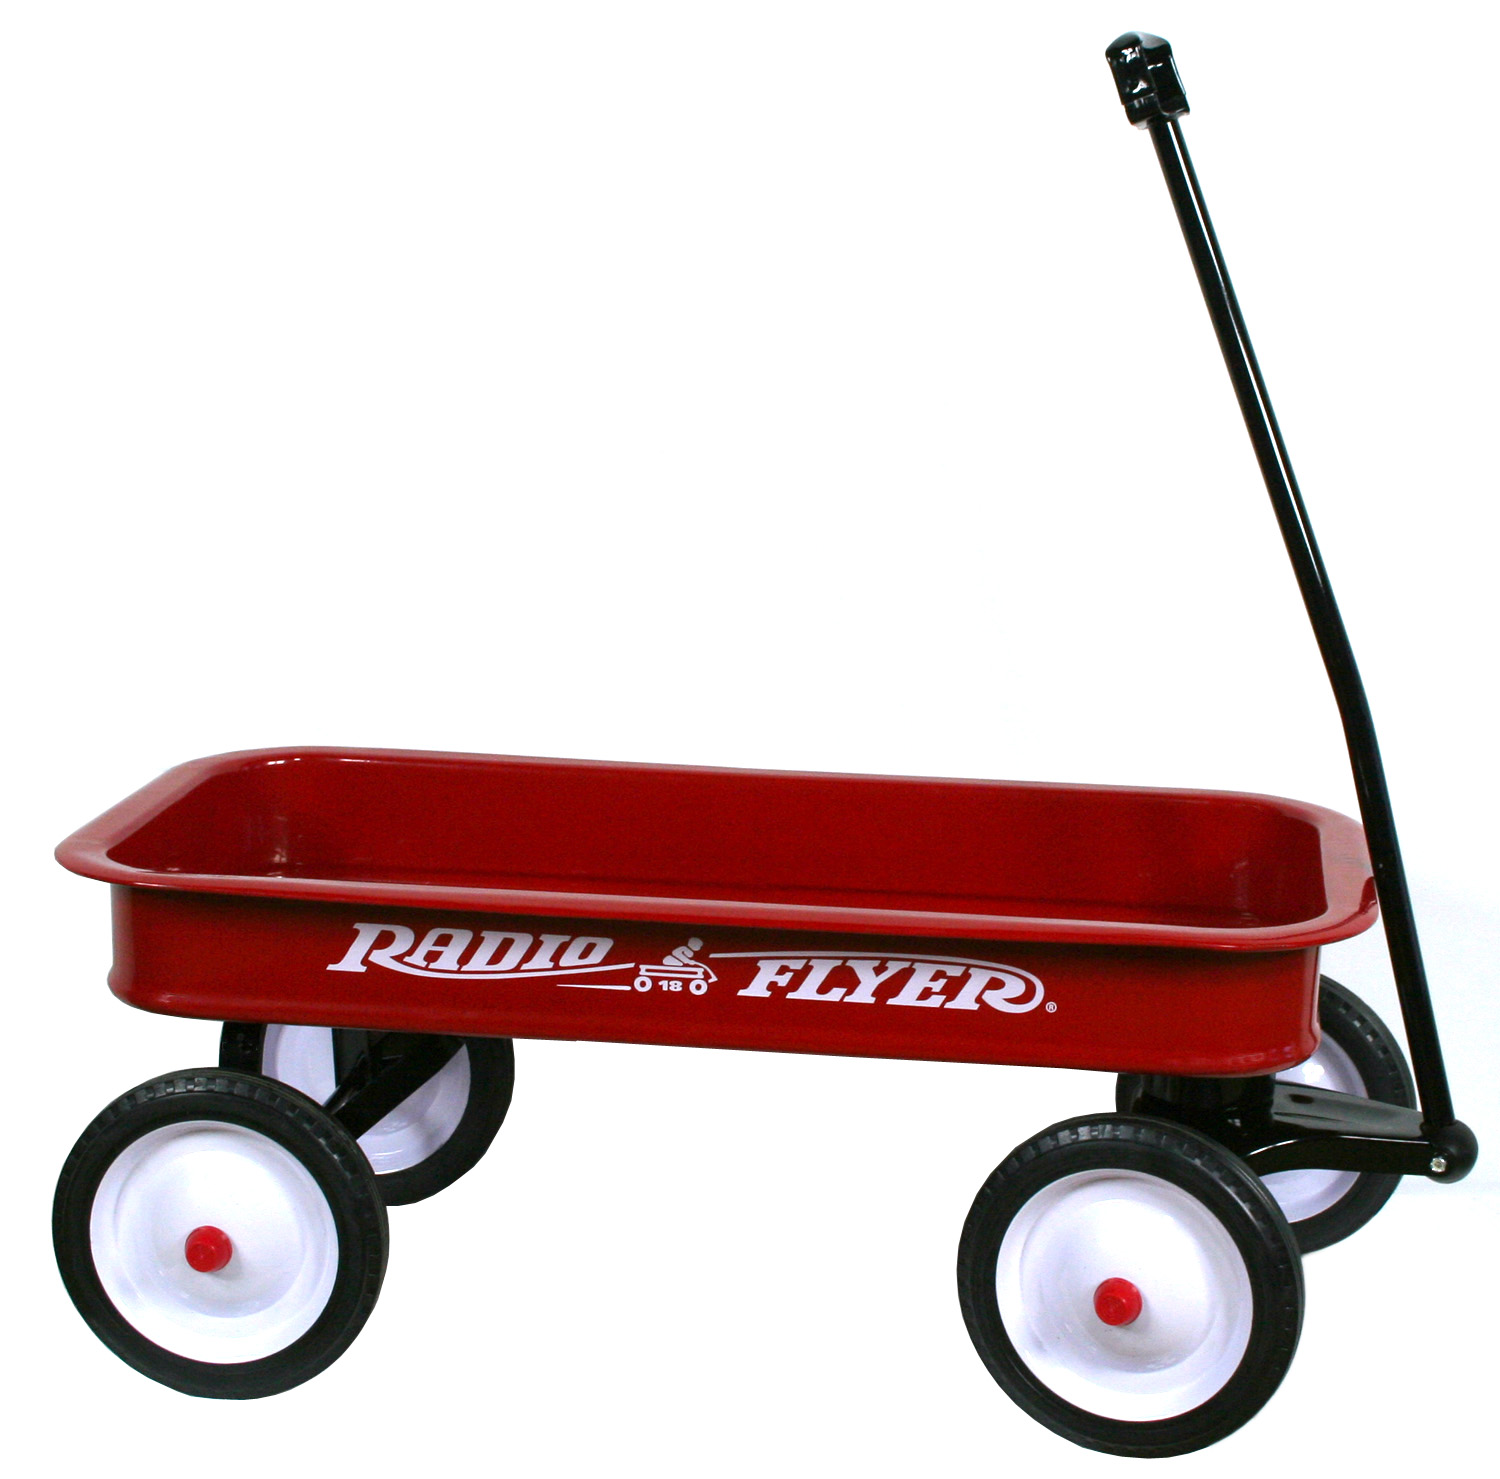 Wagon clipart little red wagon. Clip art library